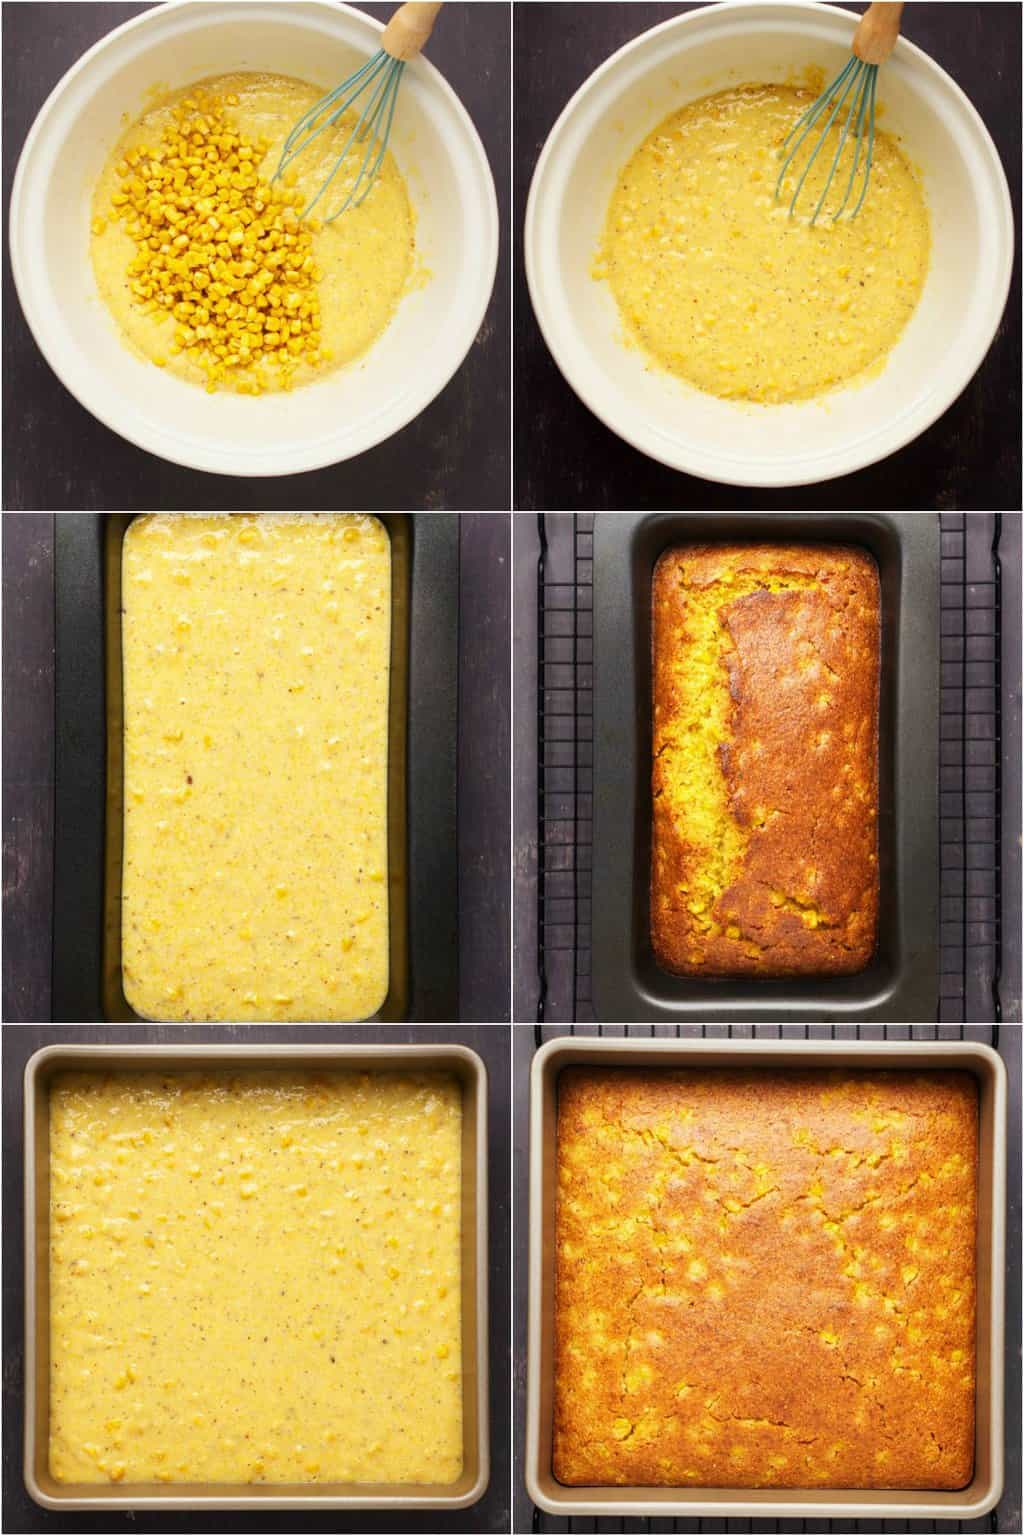 Step by step process photo collage of making vegan cornbread.